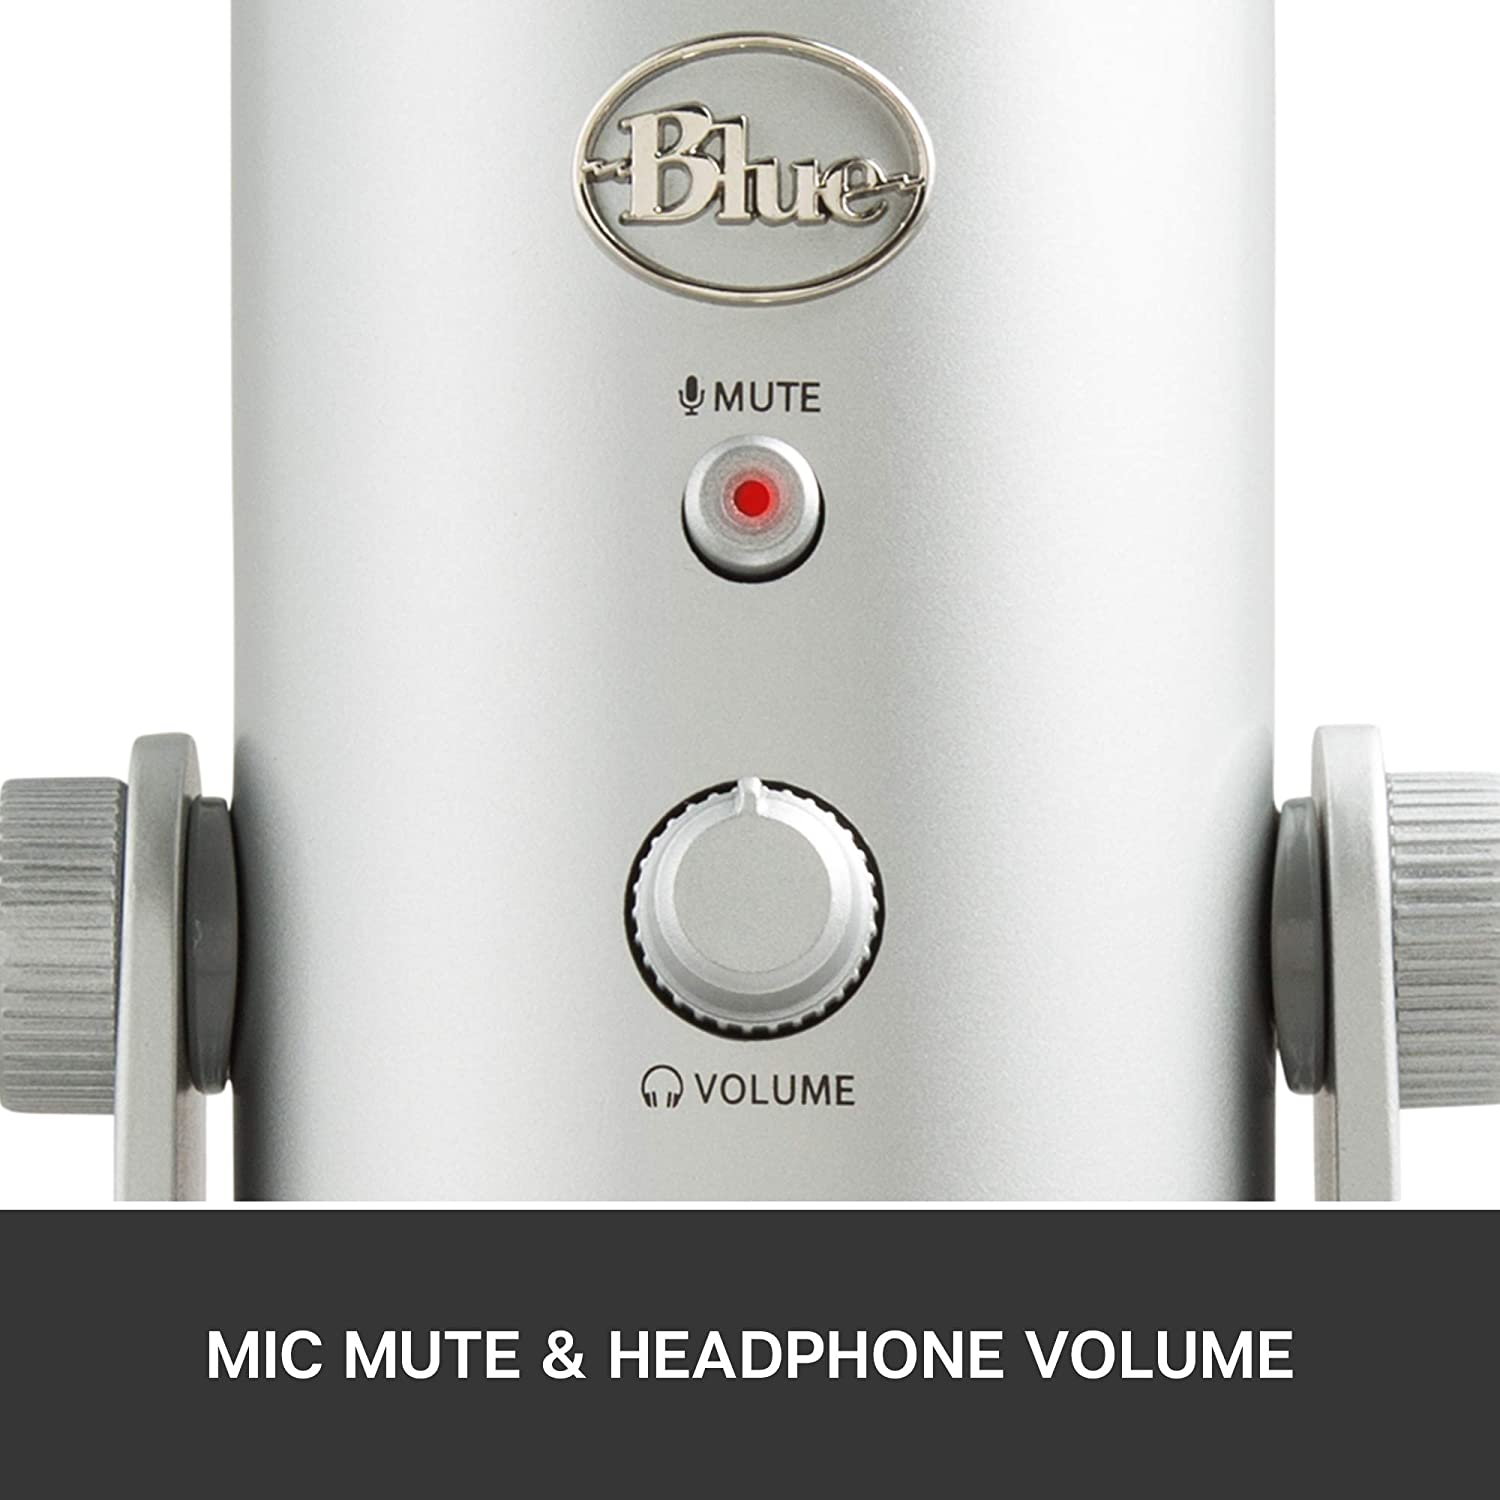 Blue Yeti USB Mic for Recording & Streaming on PC and Mac, 3 Condenser Capsules, 4 Pickup Patterns, Headphone Output and Volume Control, Mic Gain Control, Adjustable Stand, Plug & Play - Silver: Musical Instruments